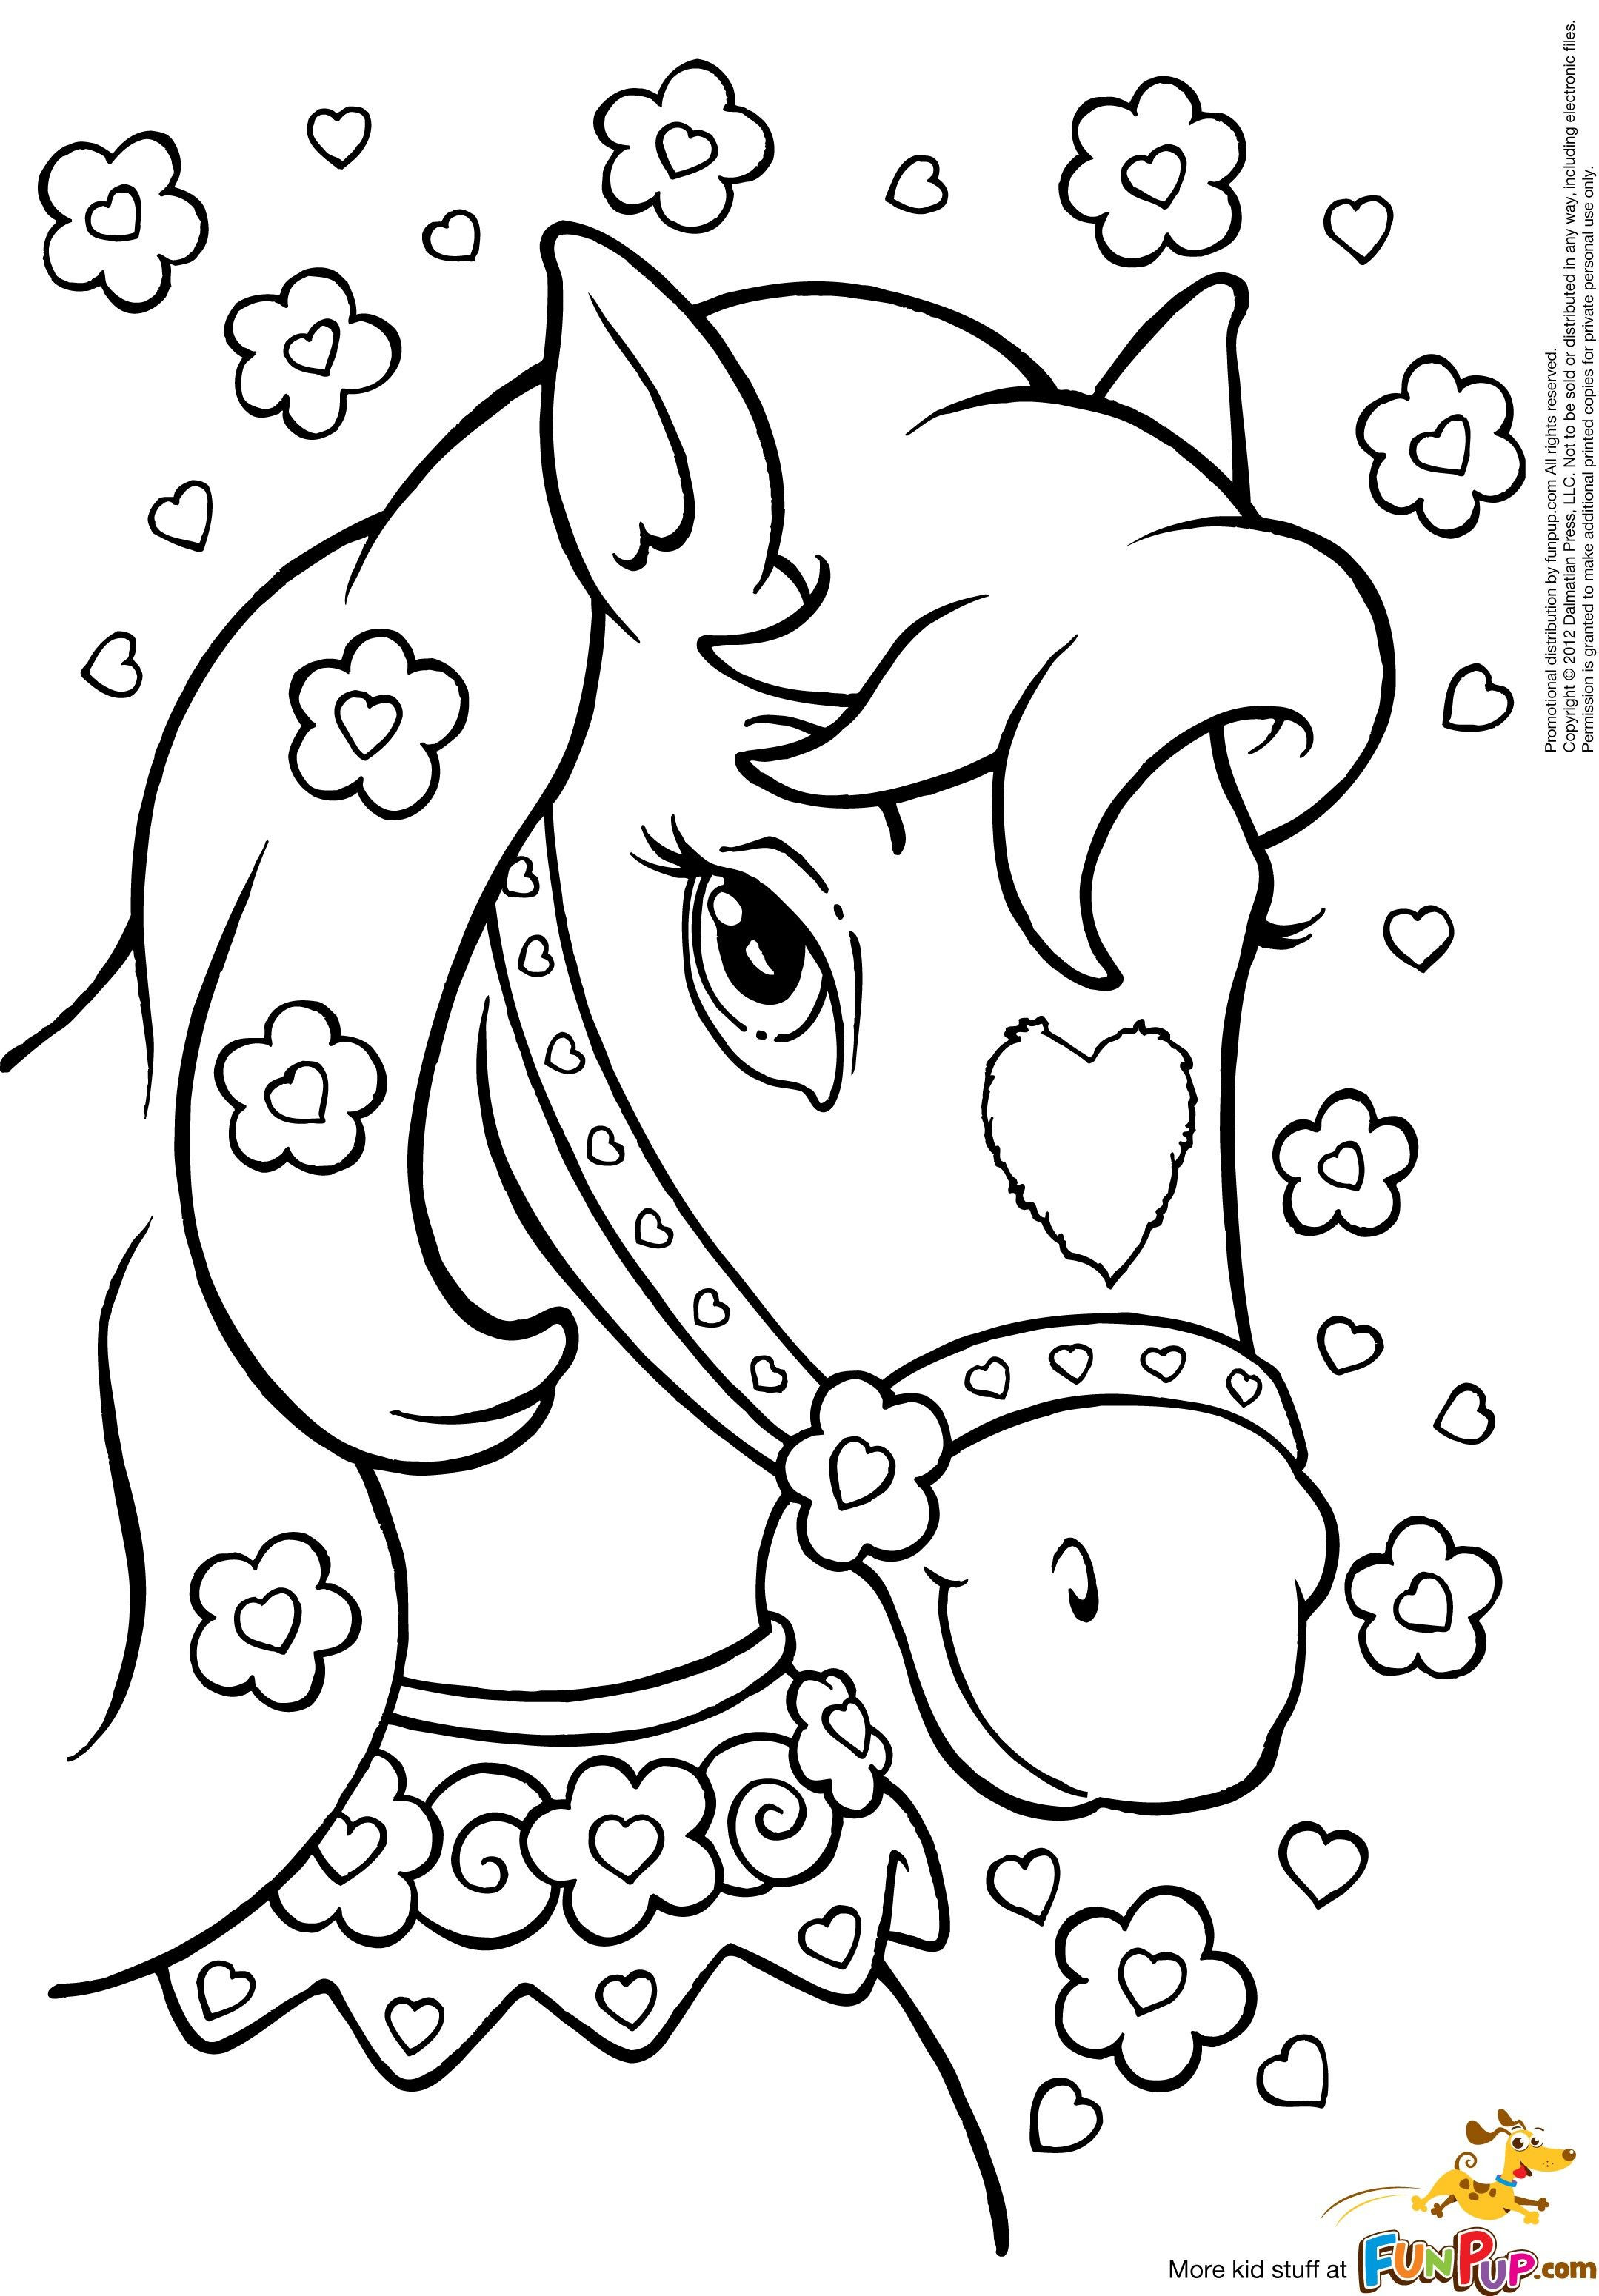 Best ideas about Free Princess Printable Coloring Pages . Save or Pin printable princess coloring pages Now.